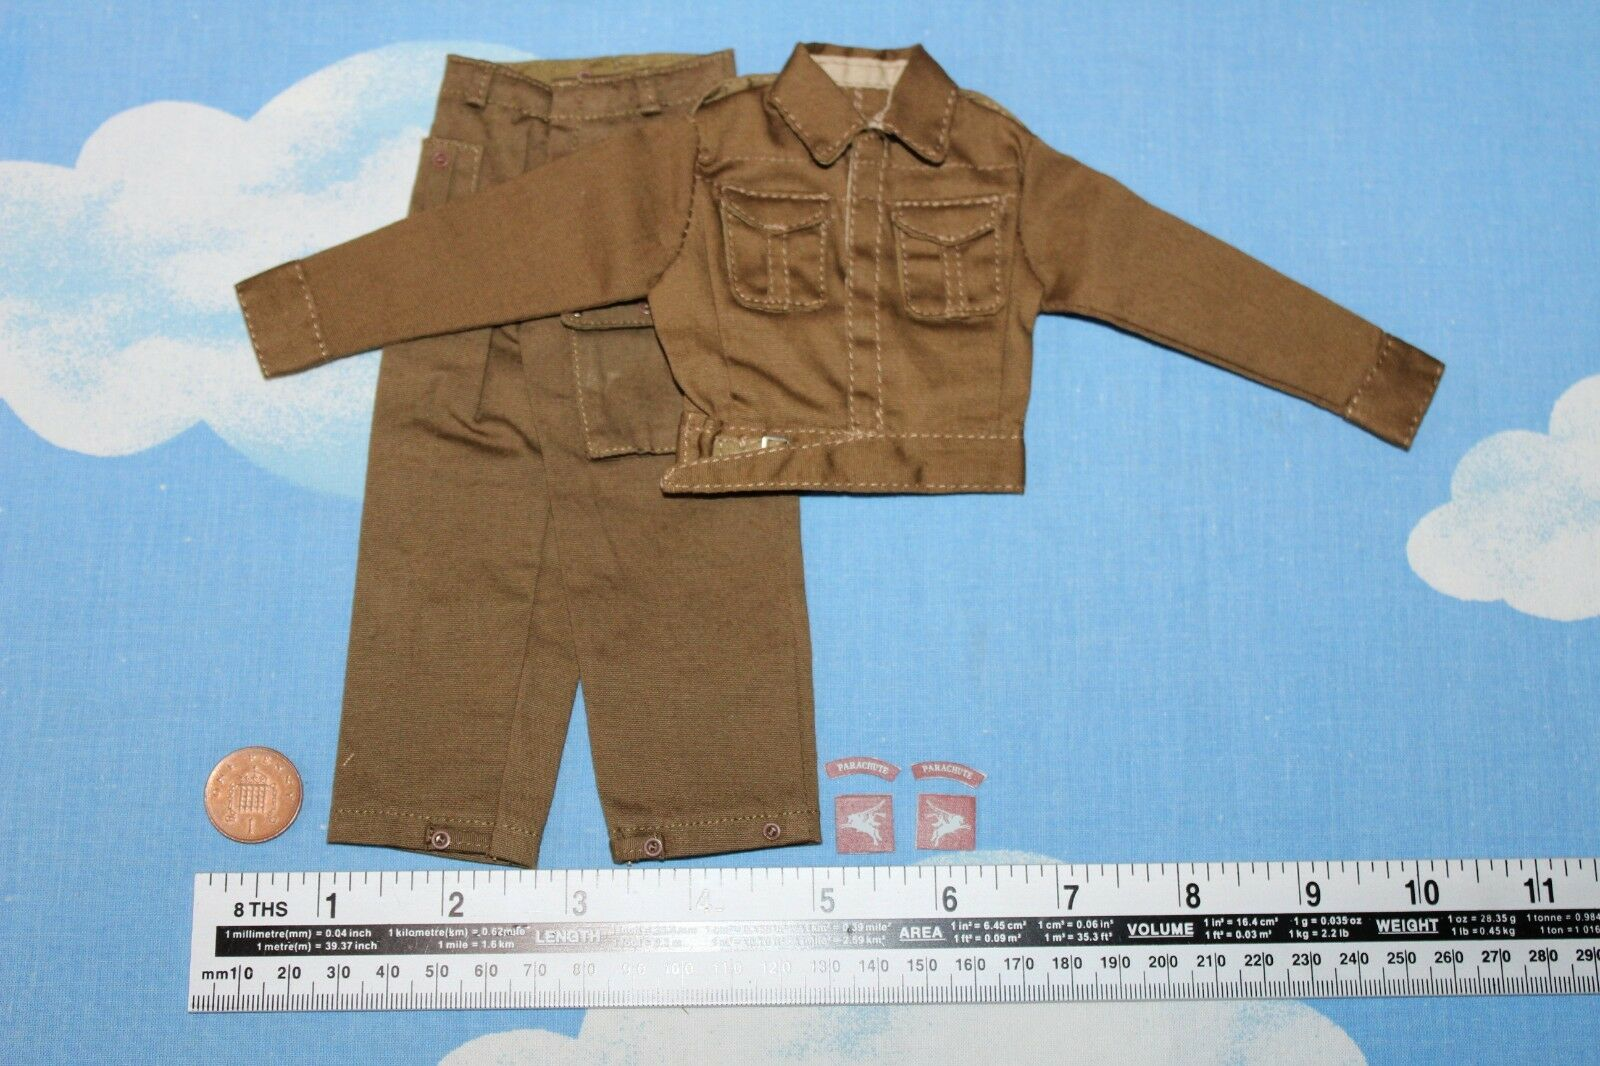 DRAGON MODELS 1 6TH SCALE WW2 BRITISH TUNIC AND TROUSERS WITH BADGES CB33426